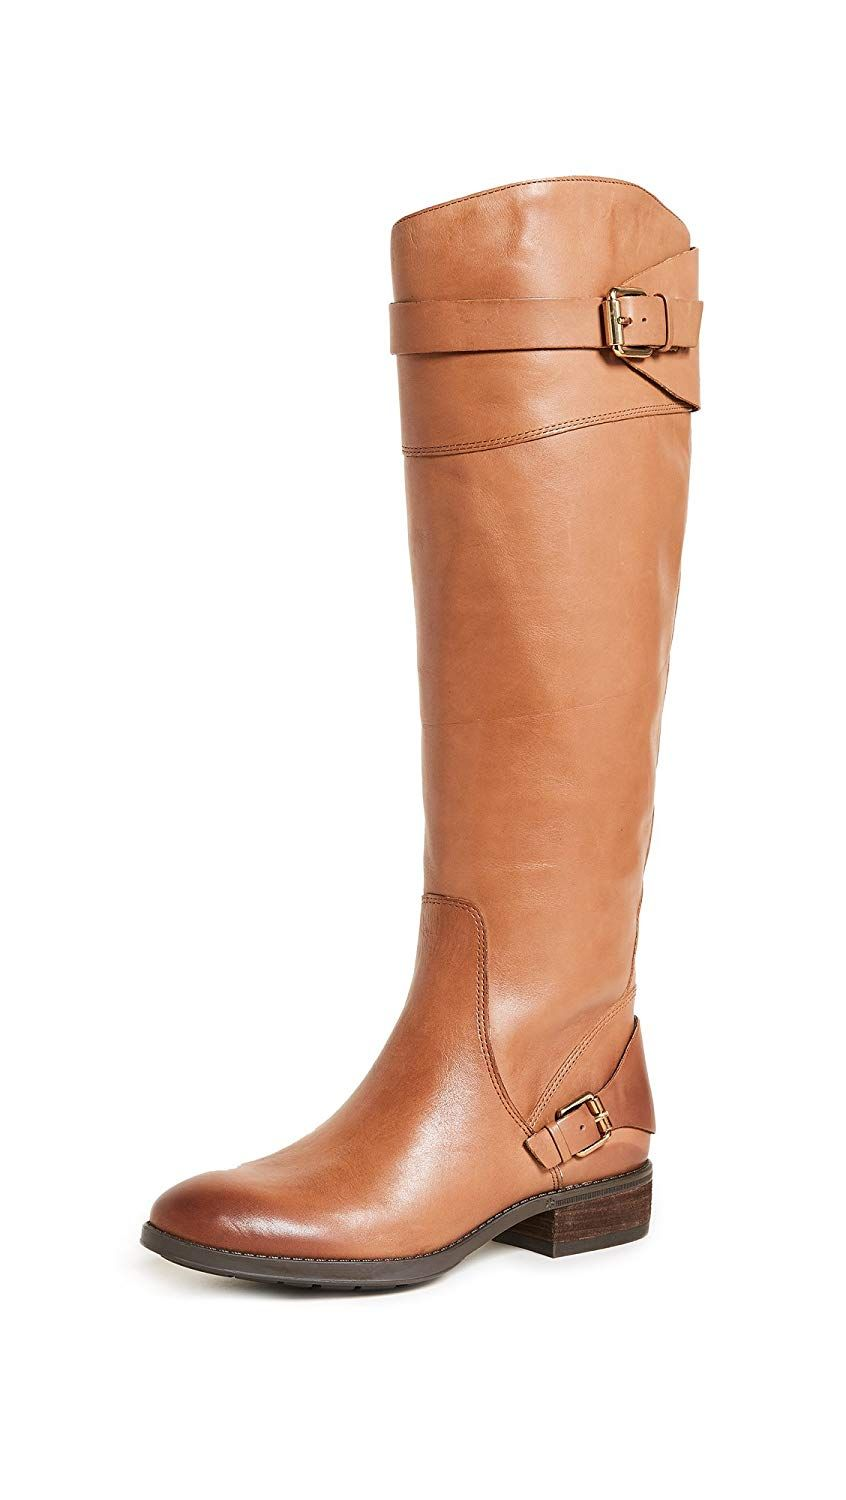 5d5dc946f99 Sam Edelman Women s Portman Knee High Boot   Many thanks for seeing our  photo. (